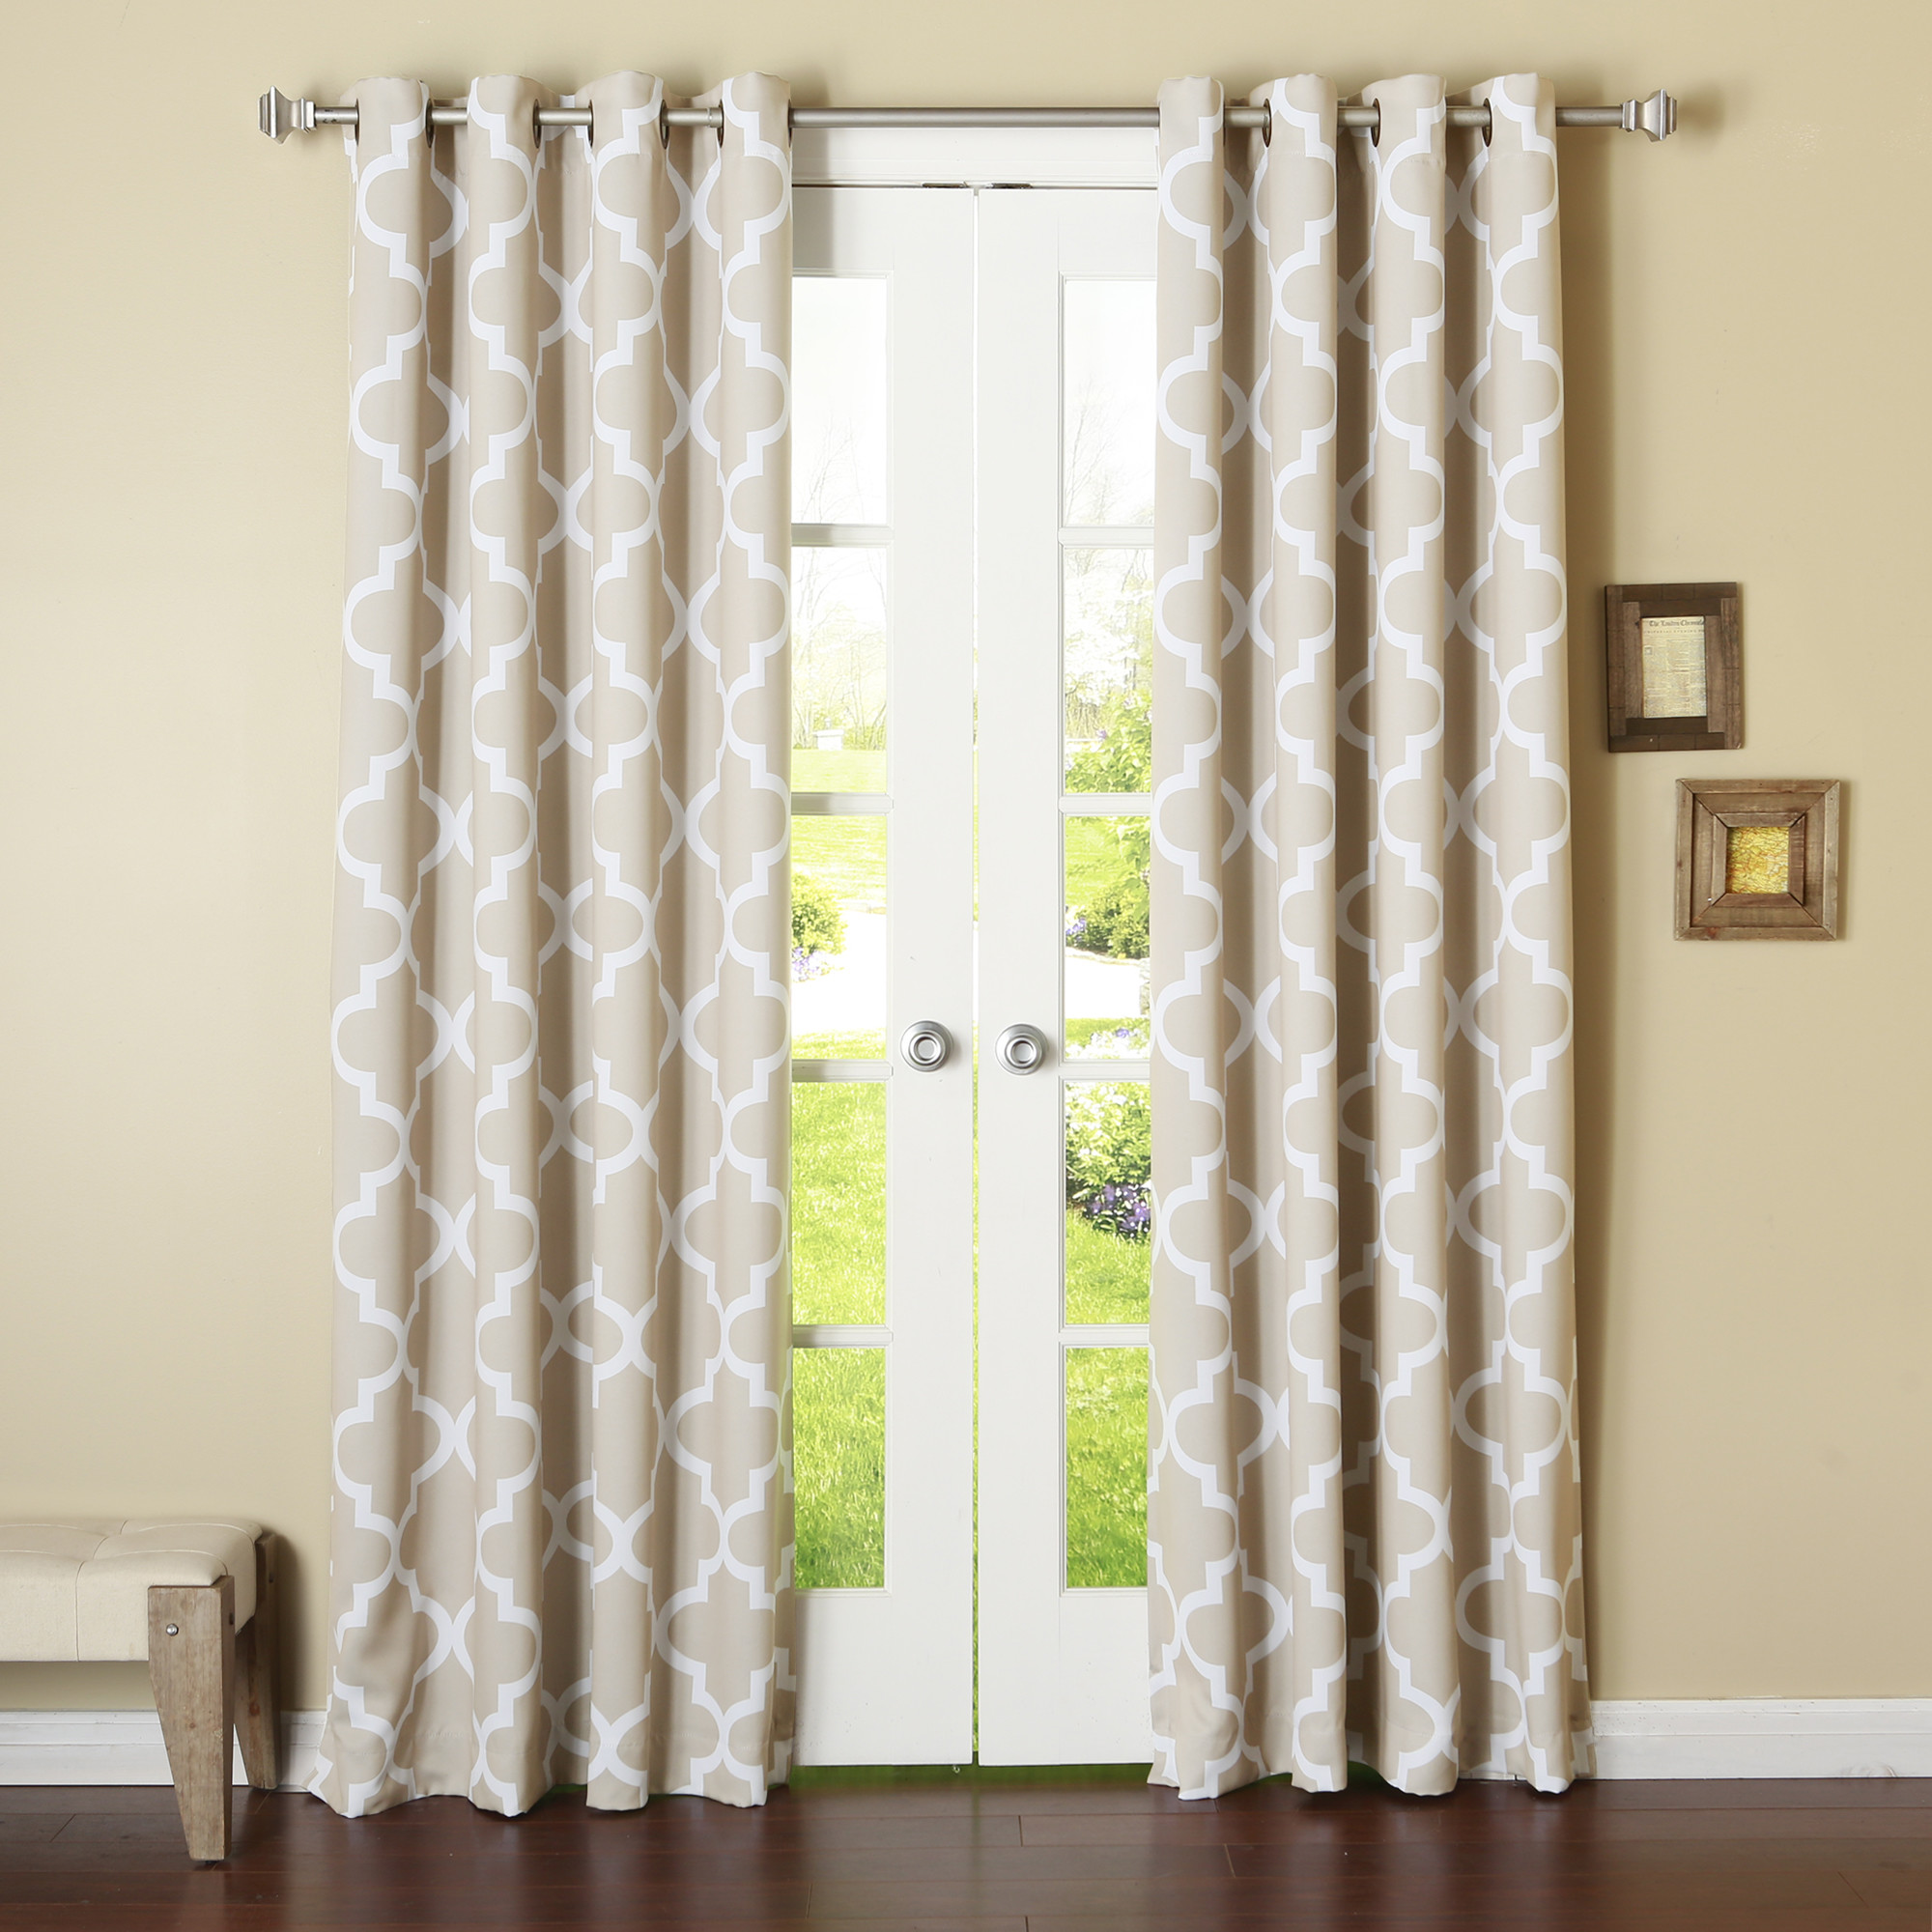 Blind & Curtain Brilliant Soundproof Curtains Tar For Best